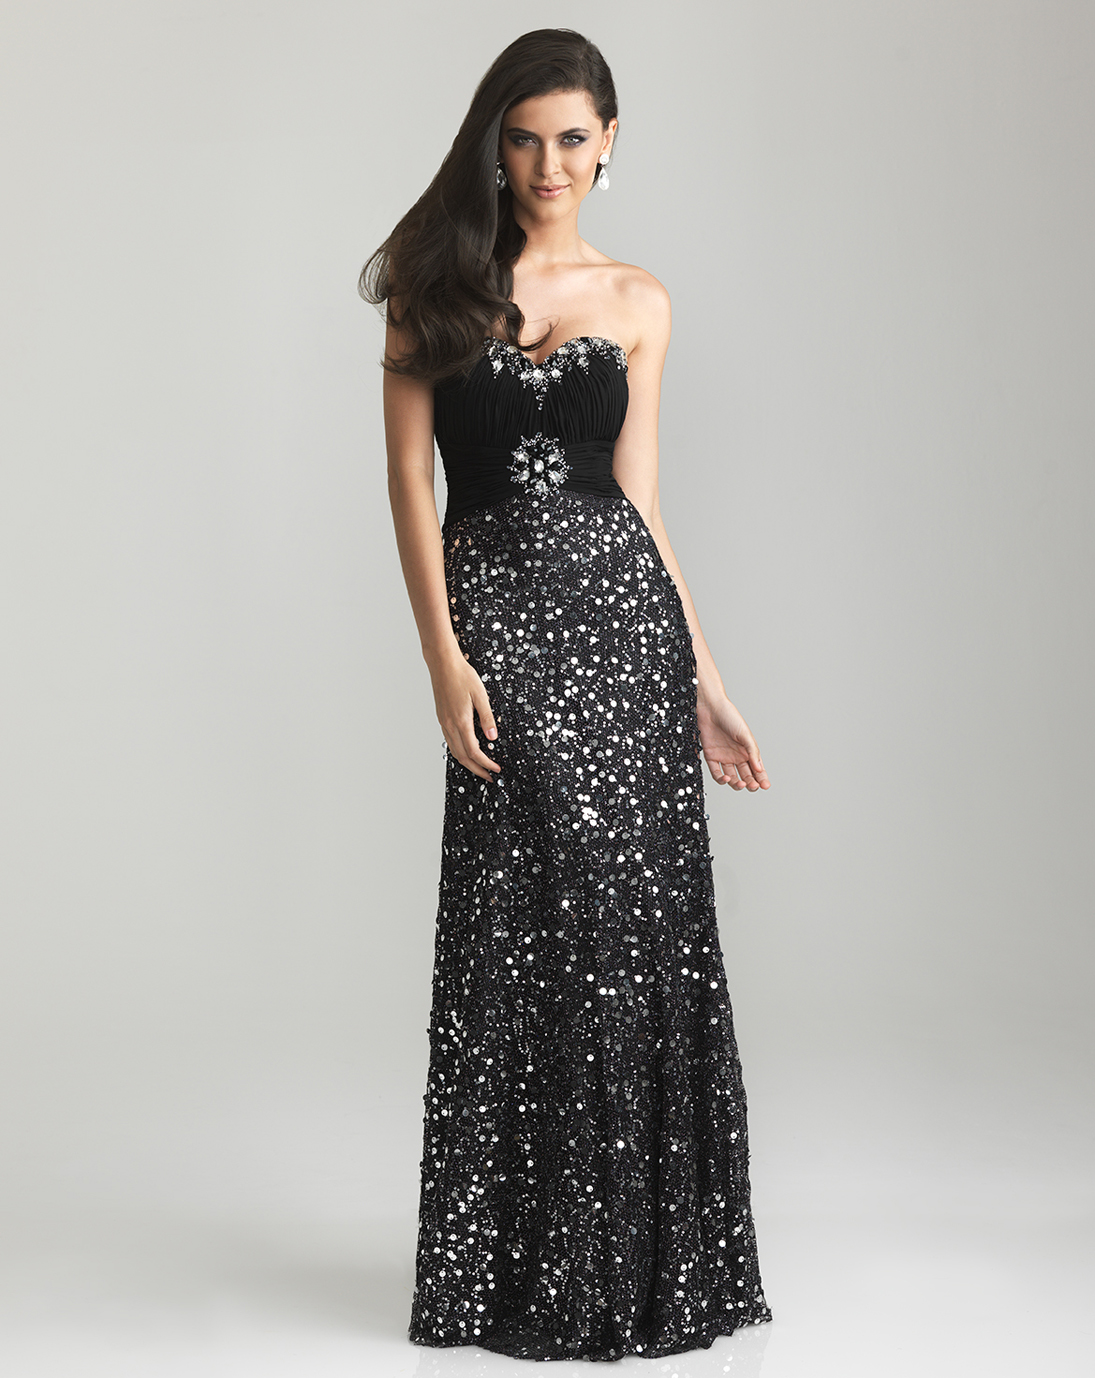 Sequin Prom Dresses | Dressed Up Girl